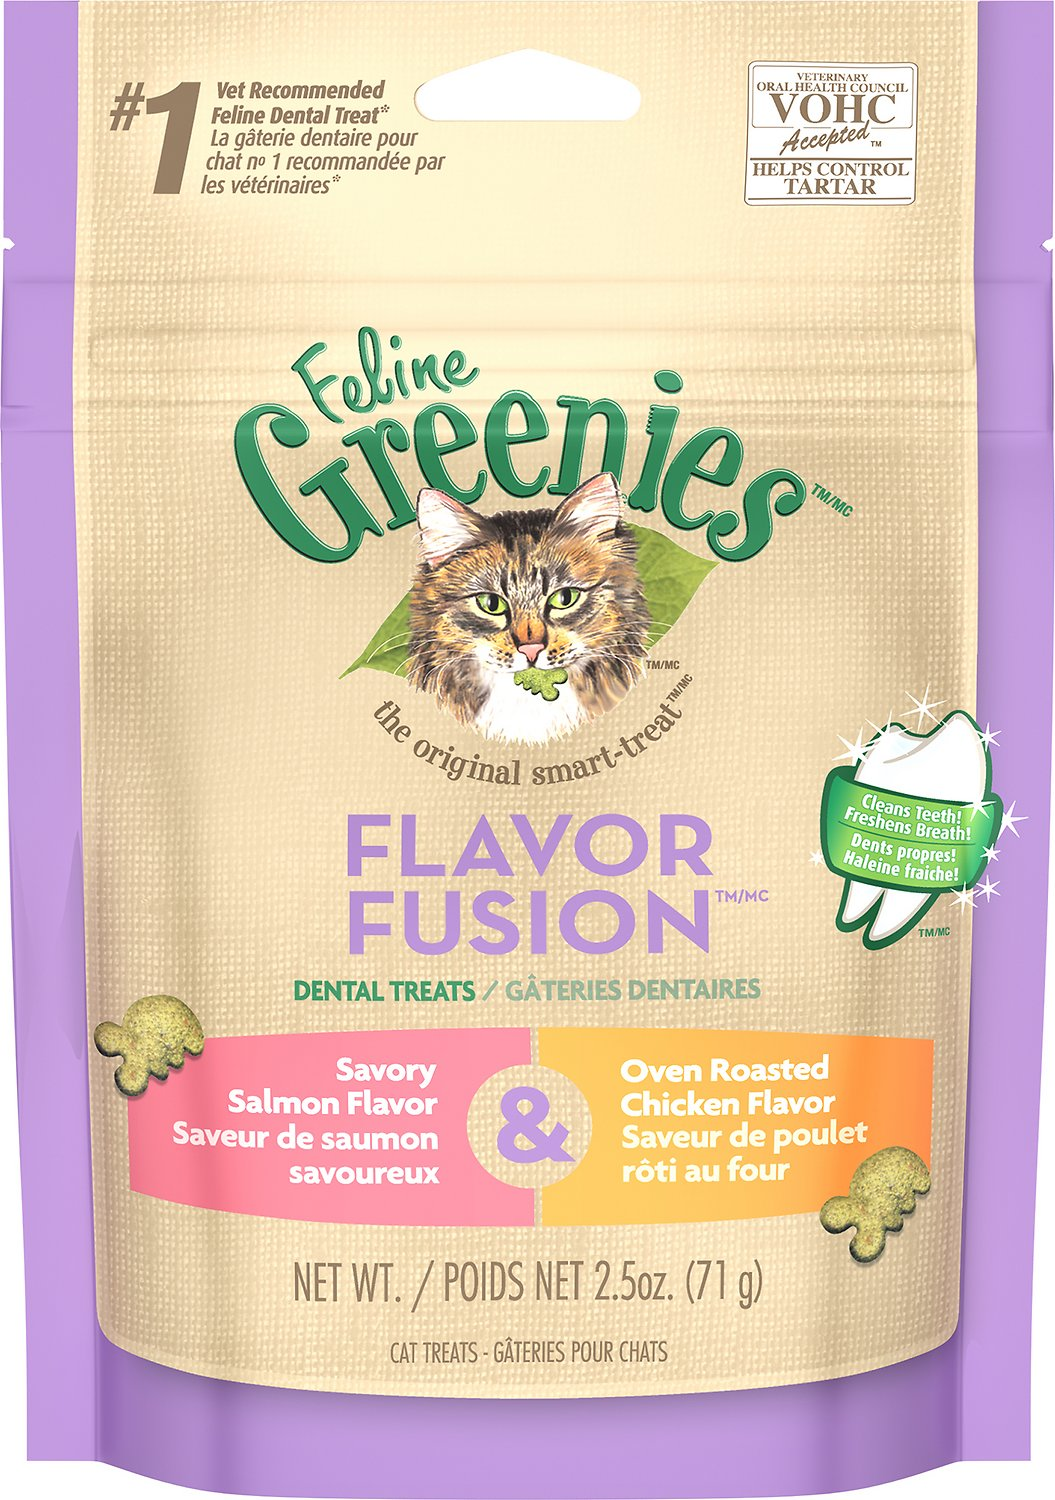 Feline Greenies Dental Treats Flavor Fusion Savory Salmon & Oven Roasted Chicken Flavor Cat Treats, 2.5-oz bag